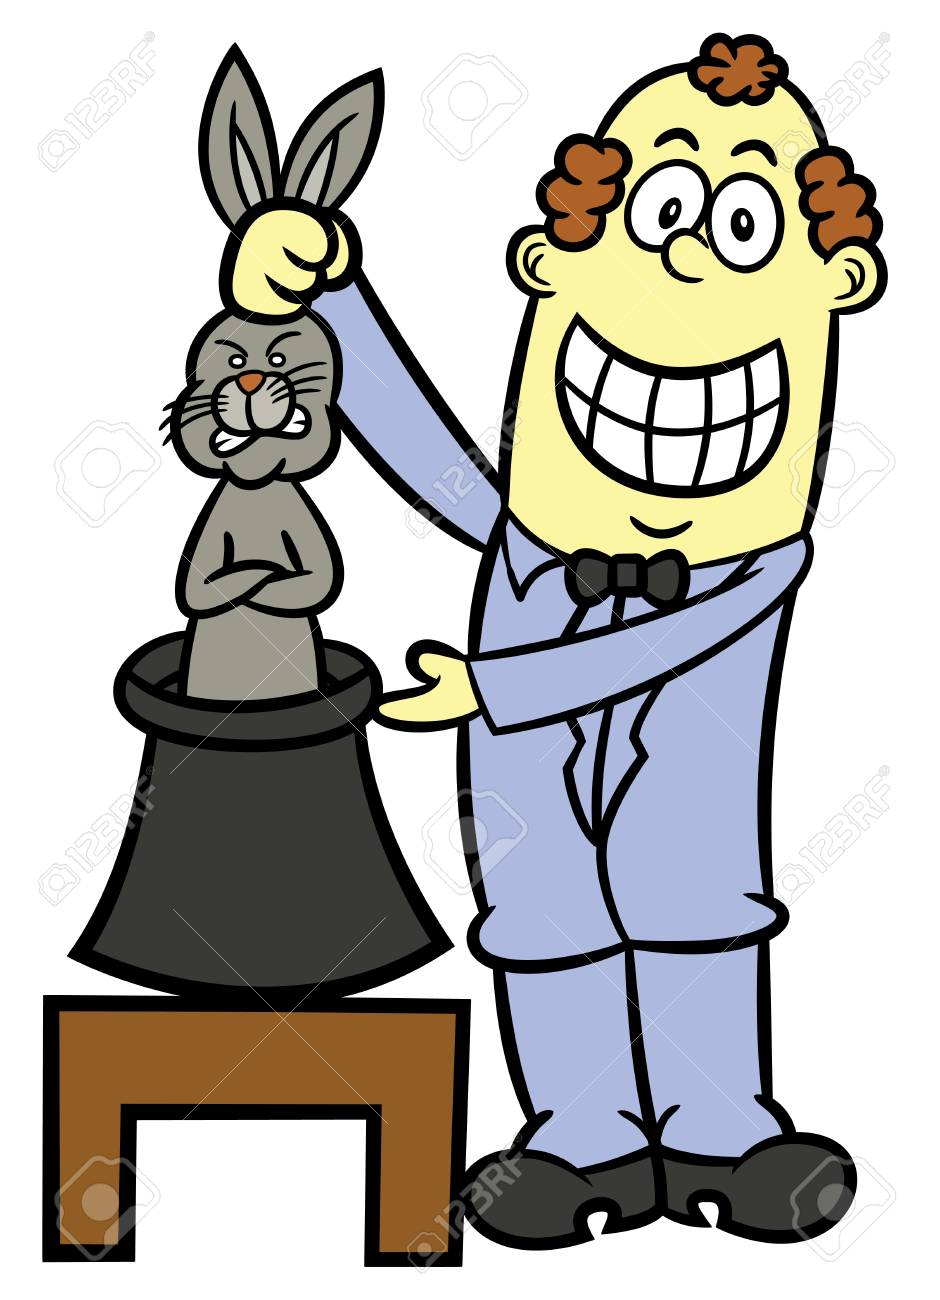 Magician Pulling Rabbit From Hat Cartoon Illustration Royalty Free  Cliparts, Vectors, And Stock Illustration. Image 68544338.